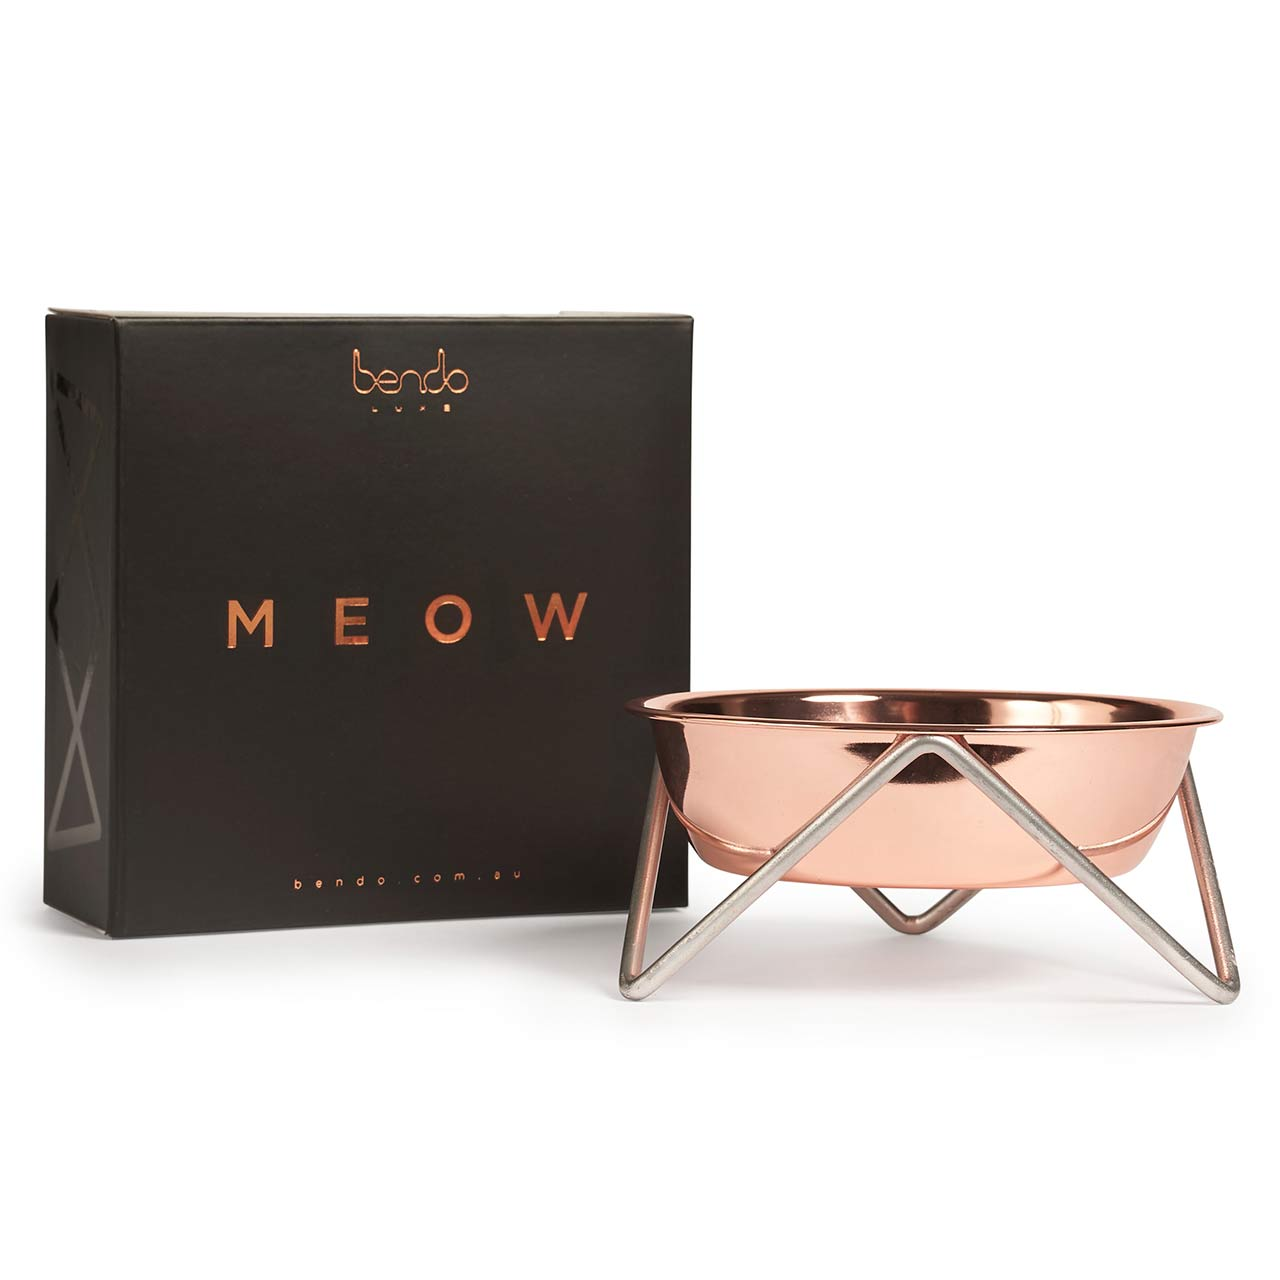 BENDO meow luxe dog bowl copper on chrome | The Design Gift Shop